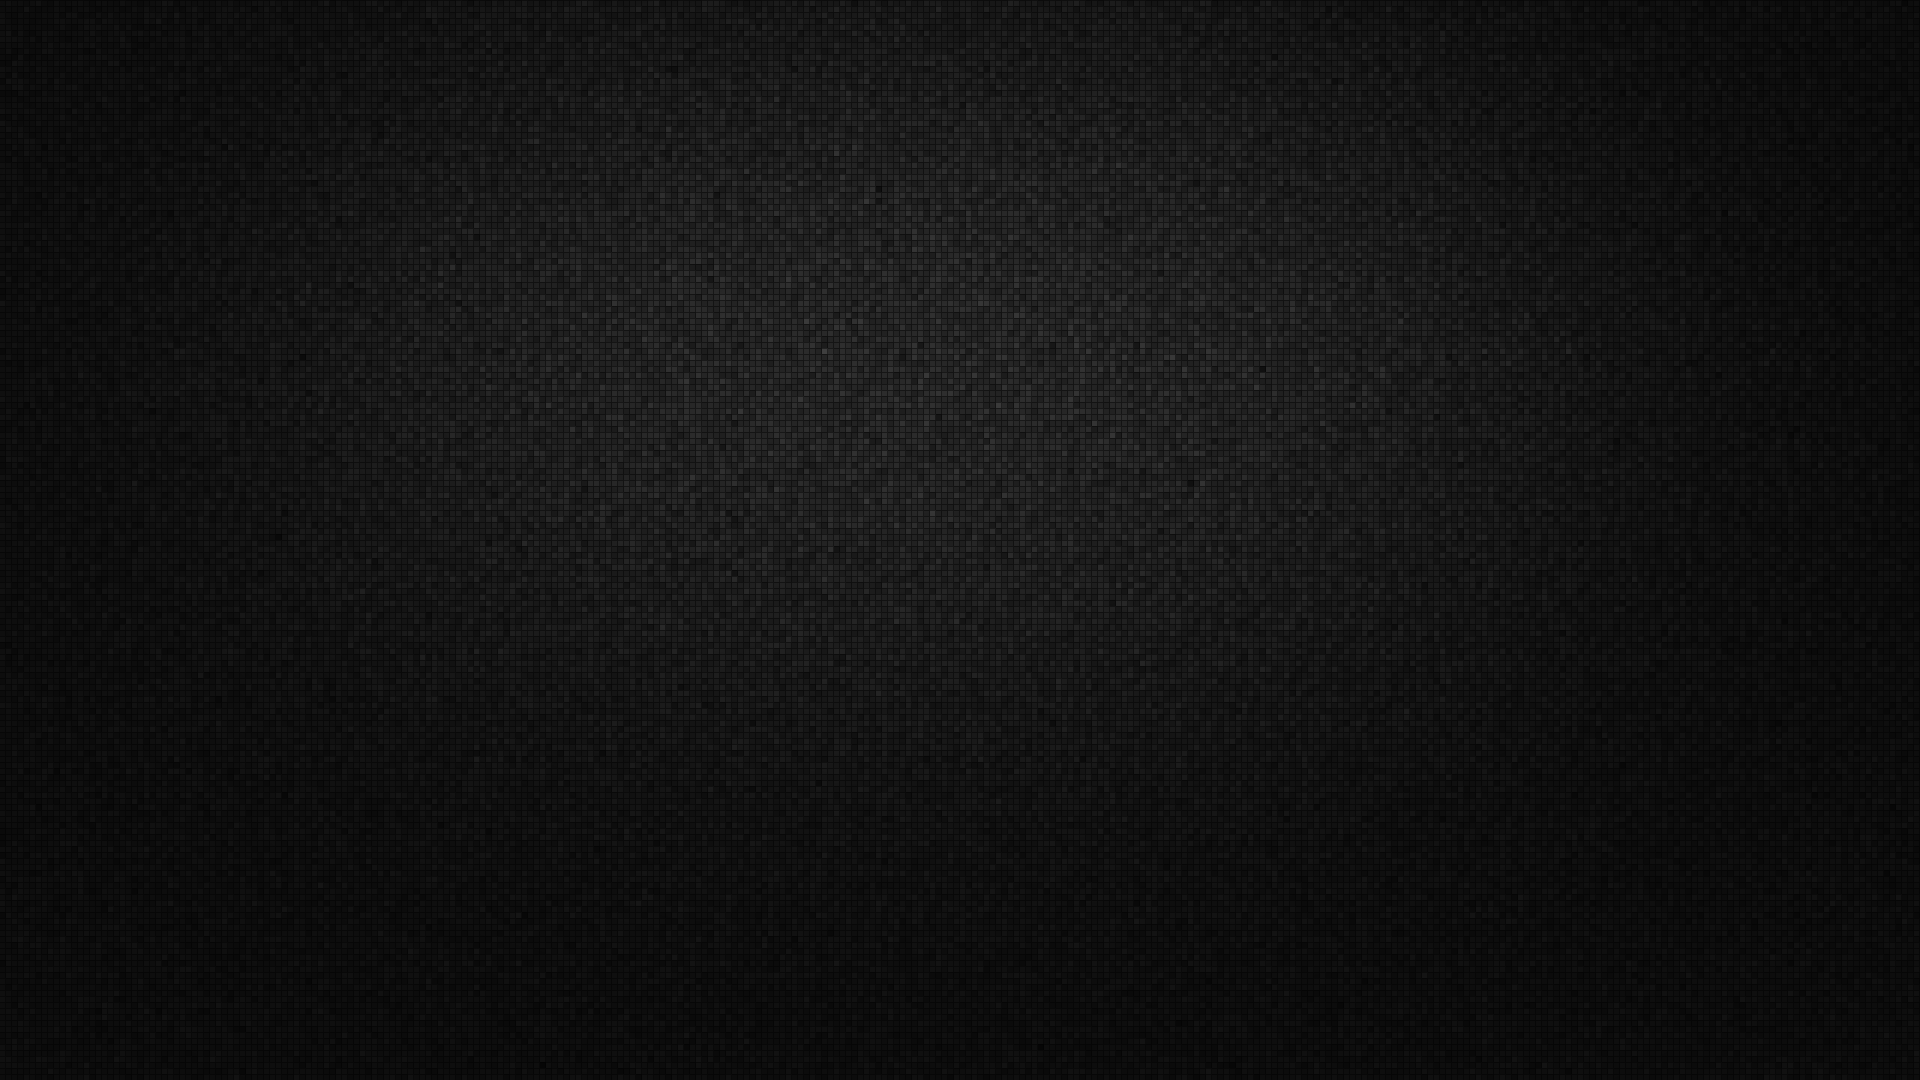 Black Computer Wallpapers Desktop Backgrounds 1920x1080 ID324423 1920x1080